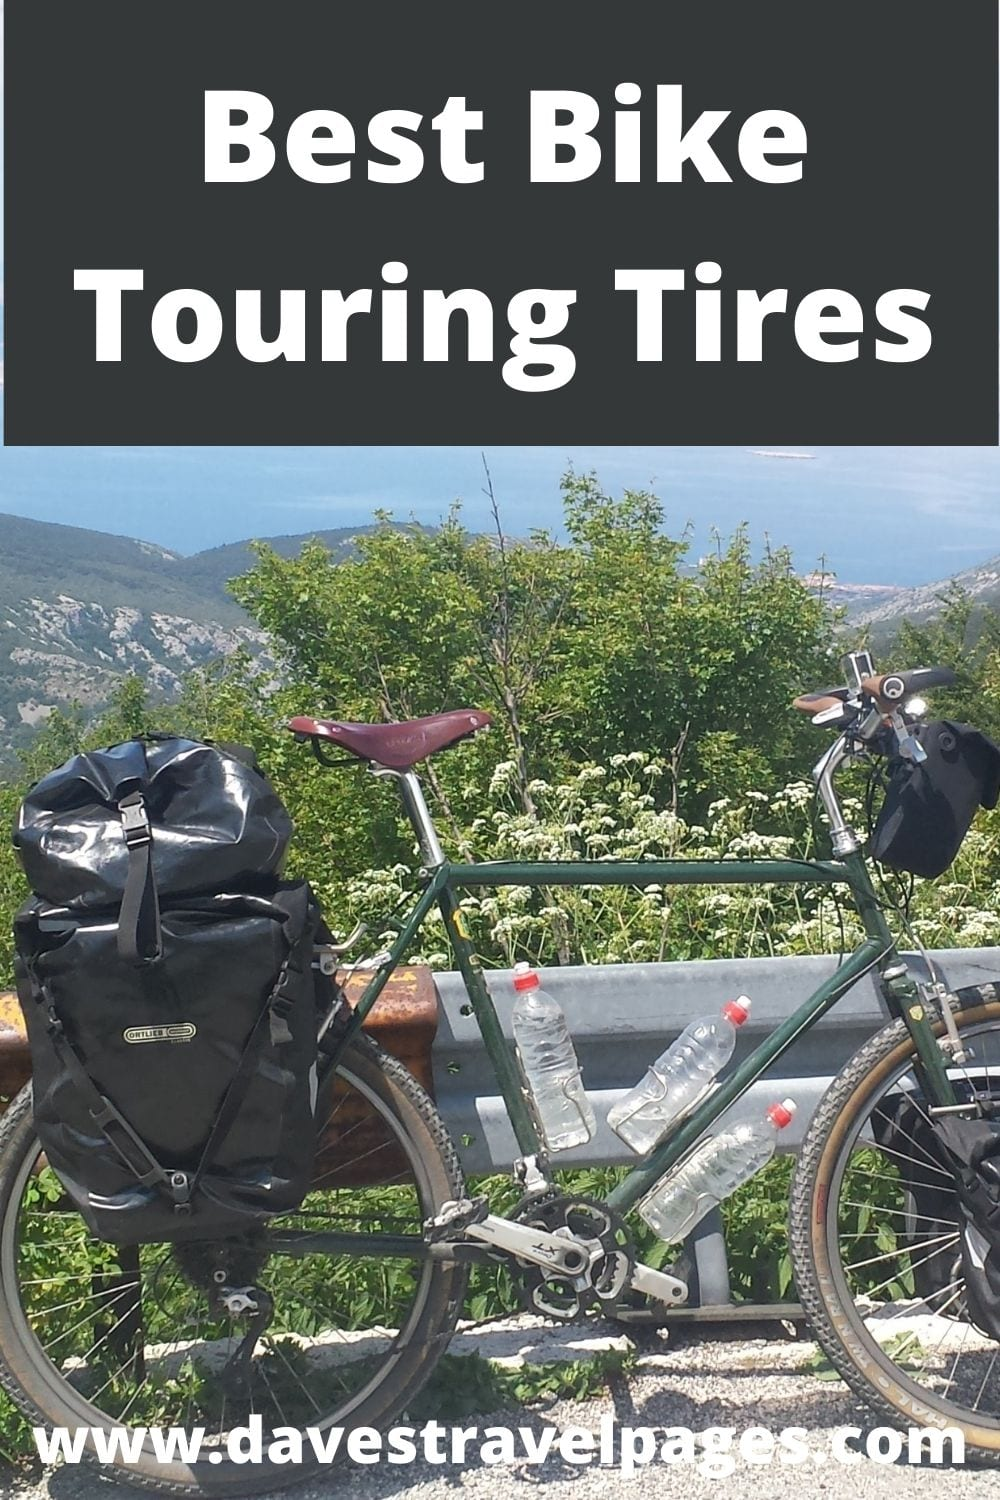 A guide to the best trekking tires for bicycle touring